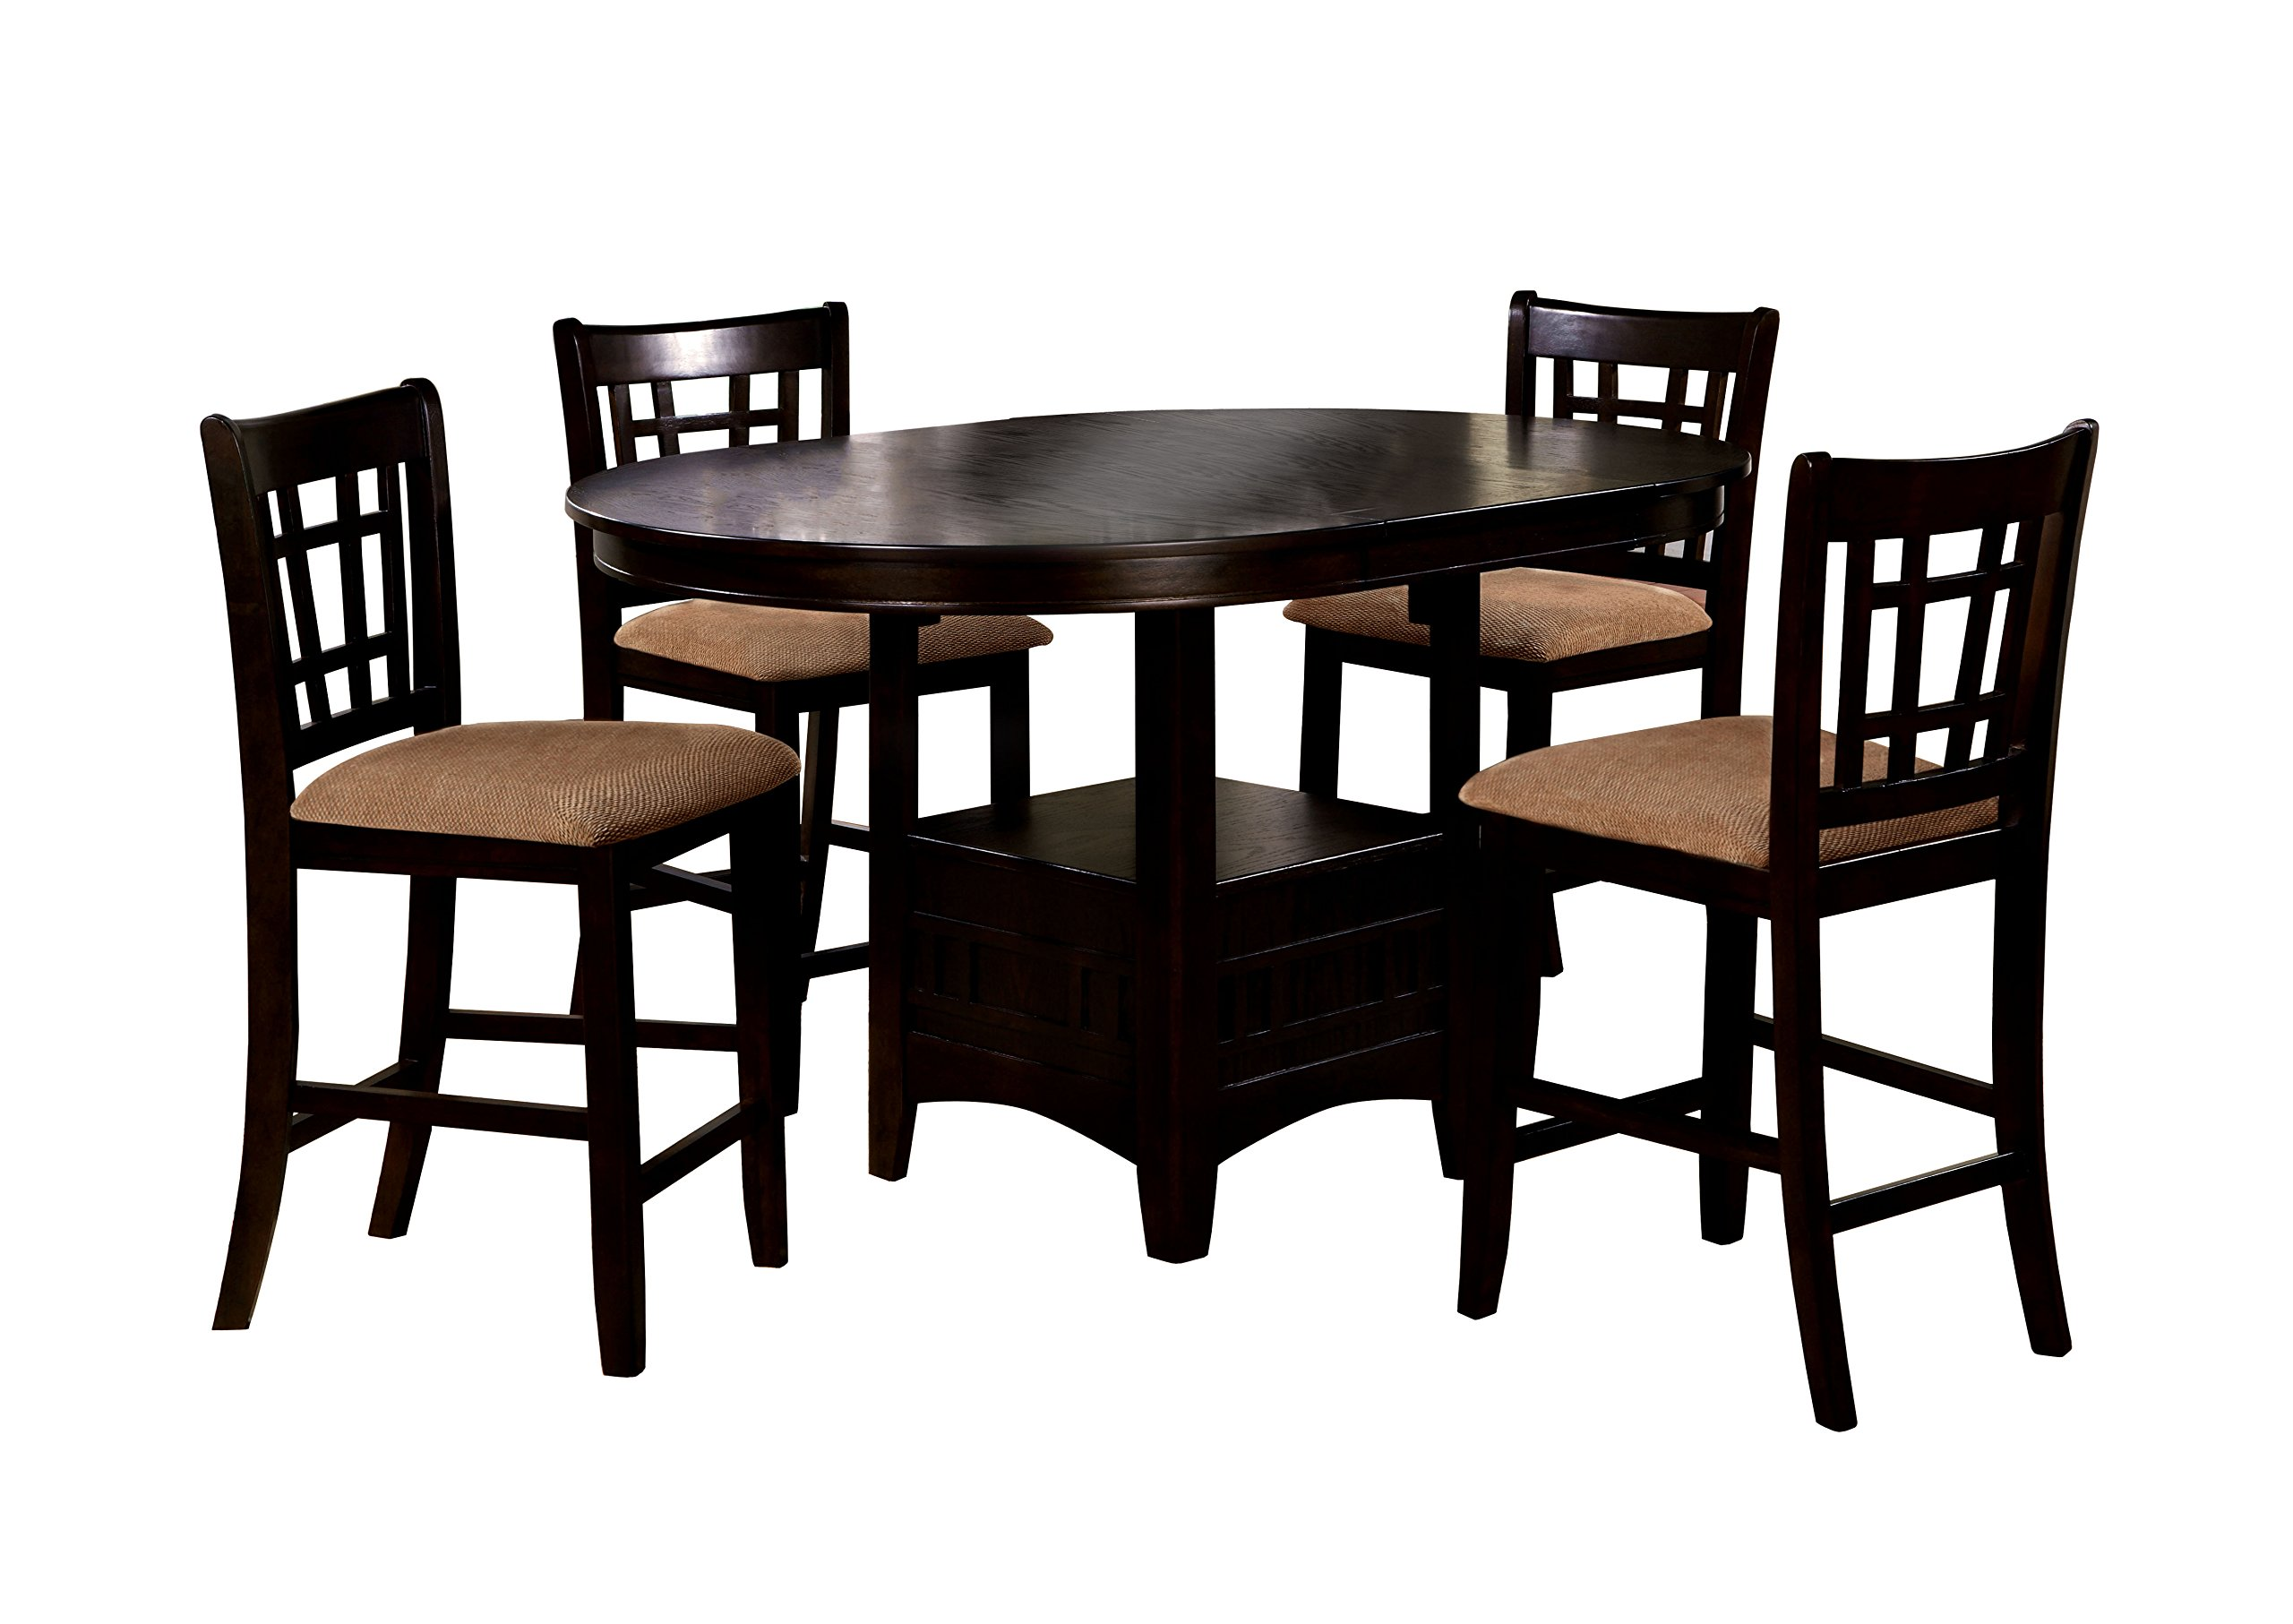 HOMES: Inside + Out IDF-3032PT-5PC Erron 5 Piece Counter Height Table Set with 18'' Expandable Leaf, Cherry